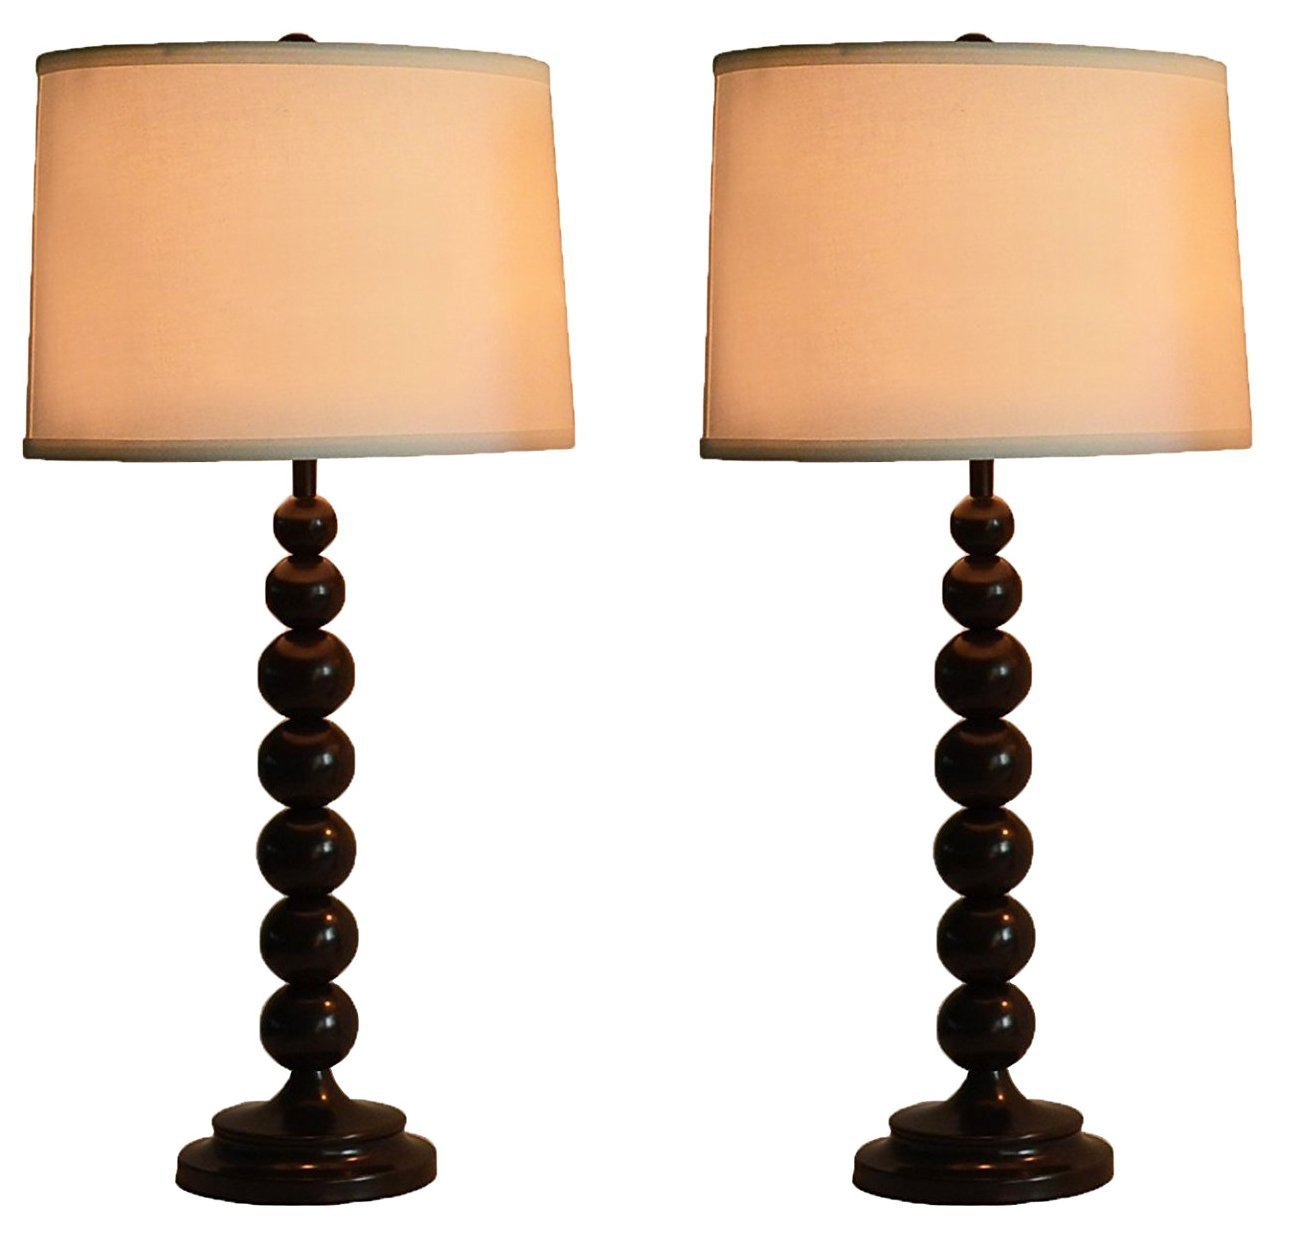 Stacked Ball Table Lamp with Linen Shade, Set of 2